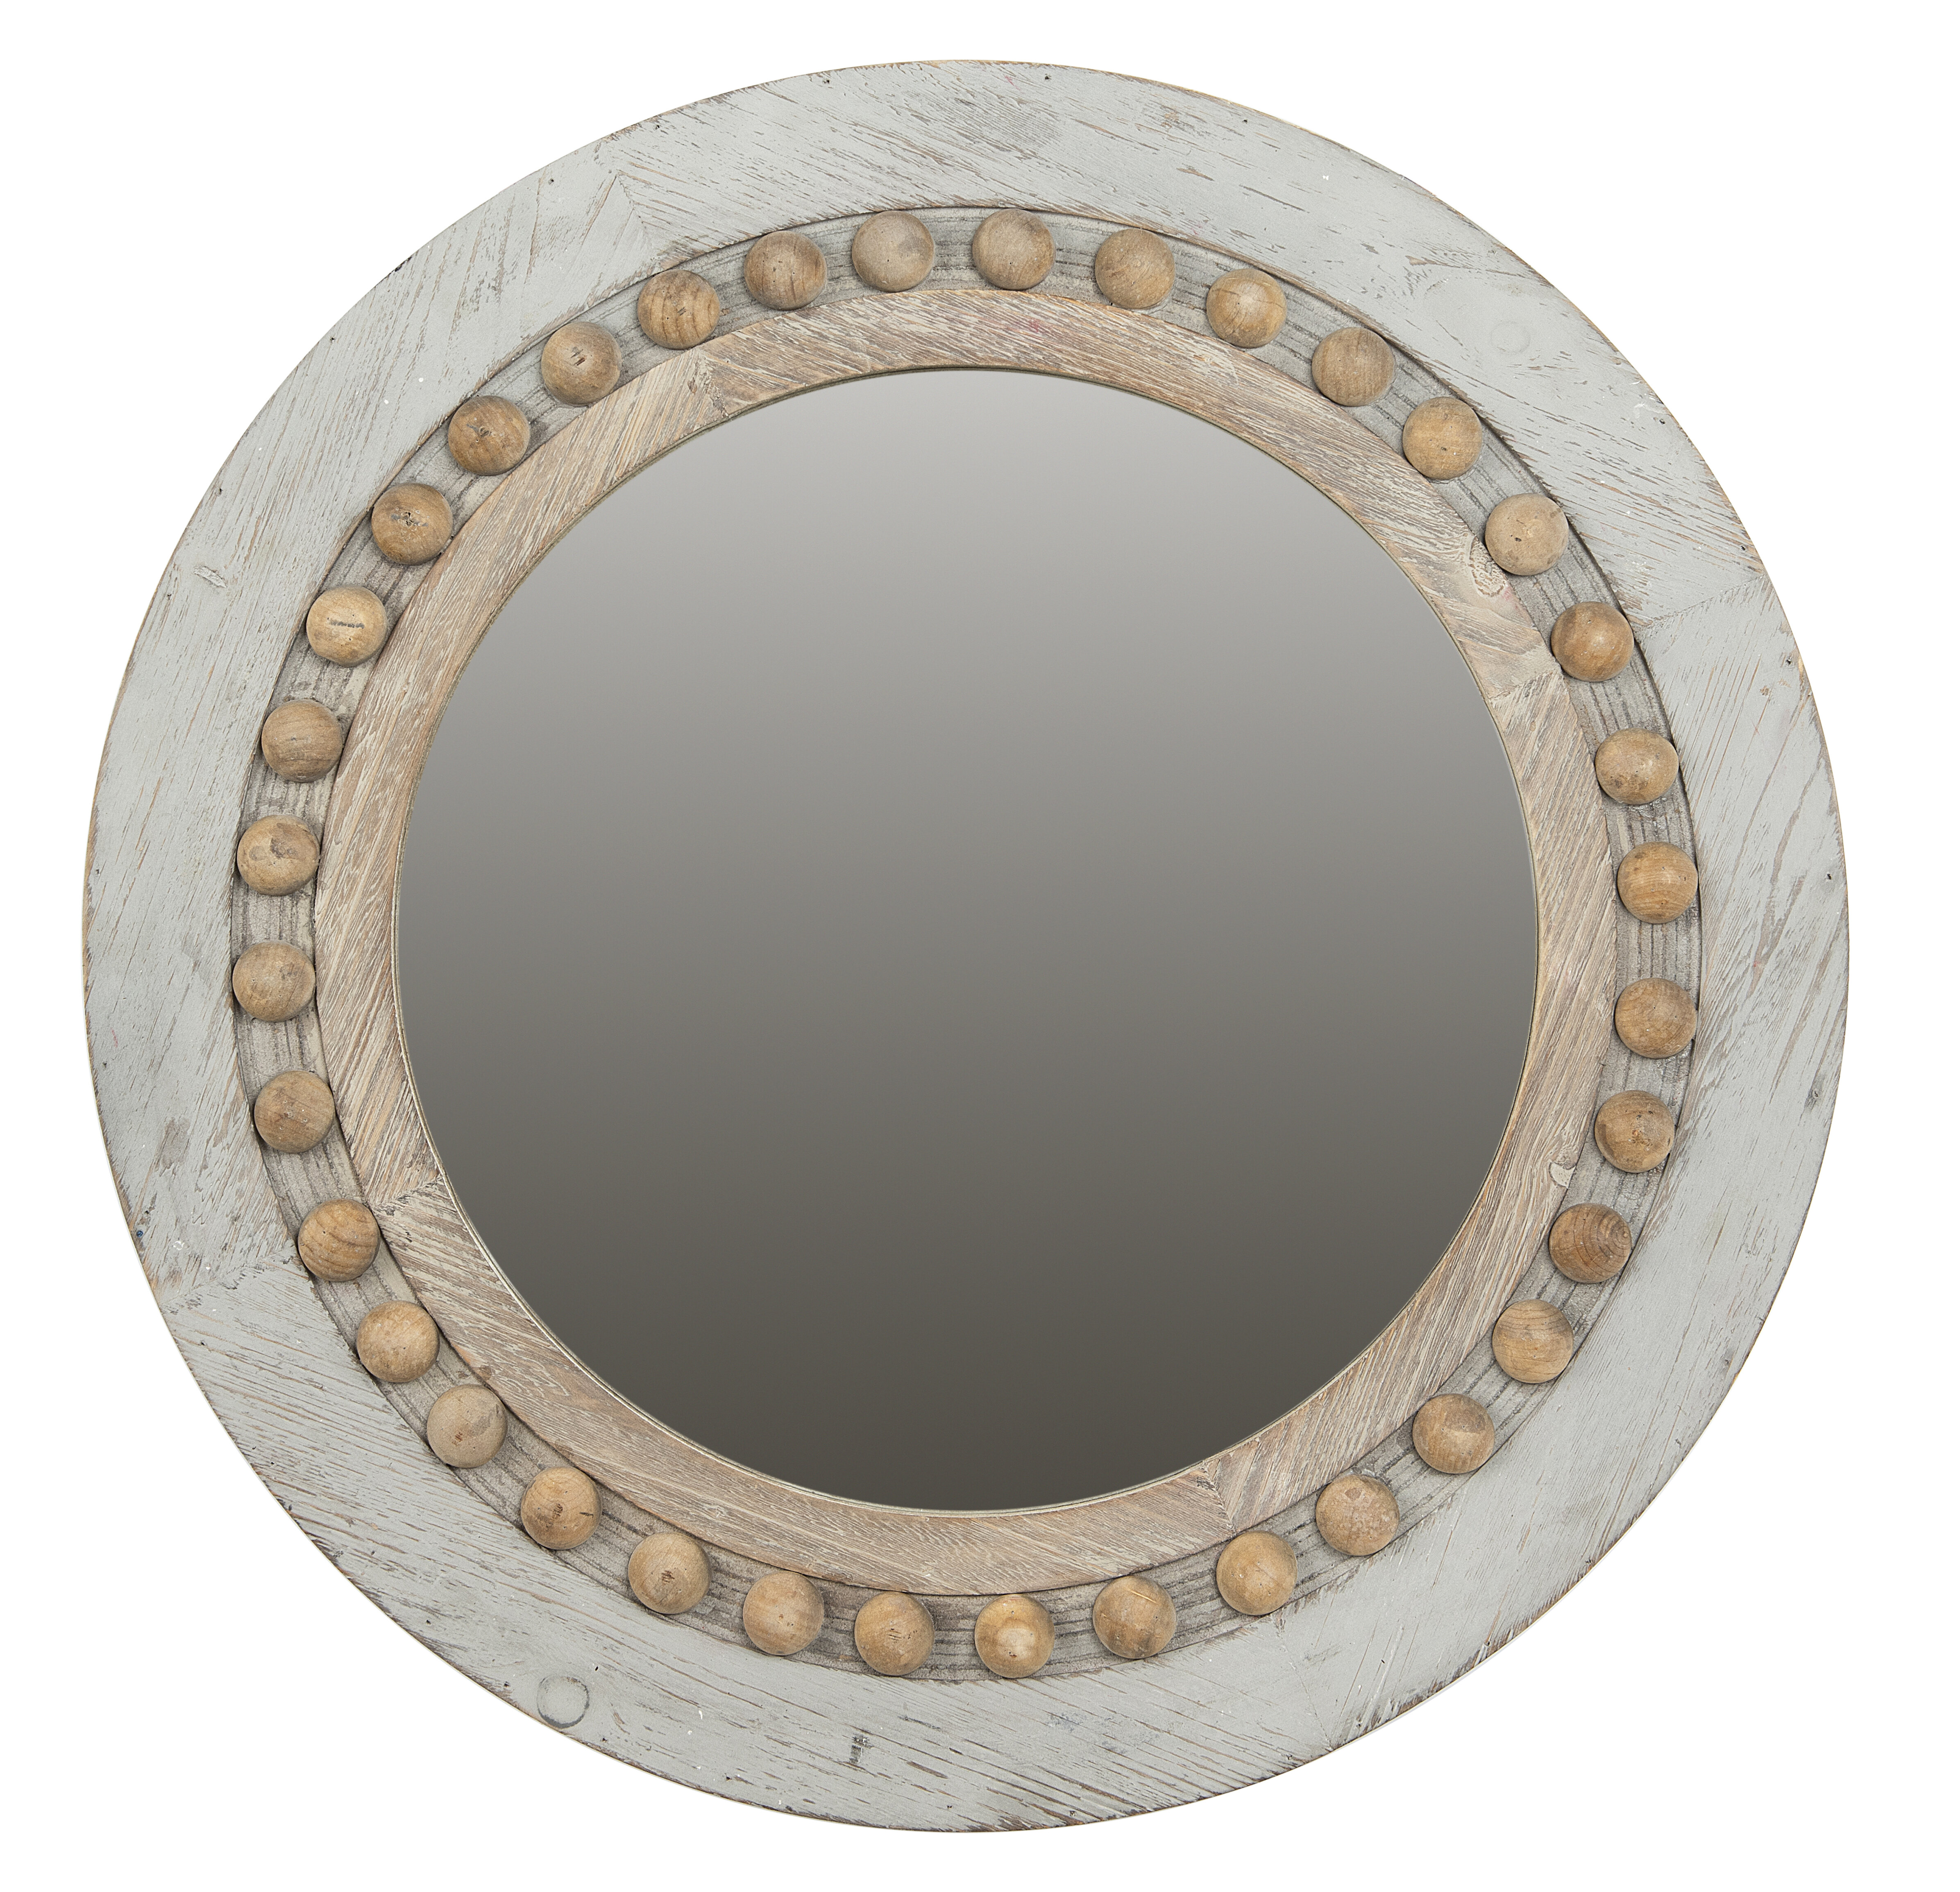 Ophelia Co Bevier Round Decorative Wood Wall Accent Mirror Reviews Wayfair